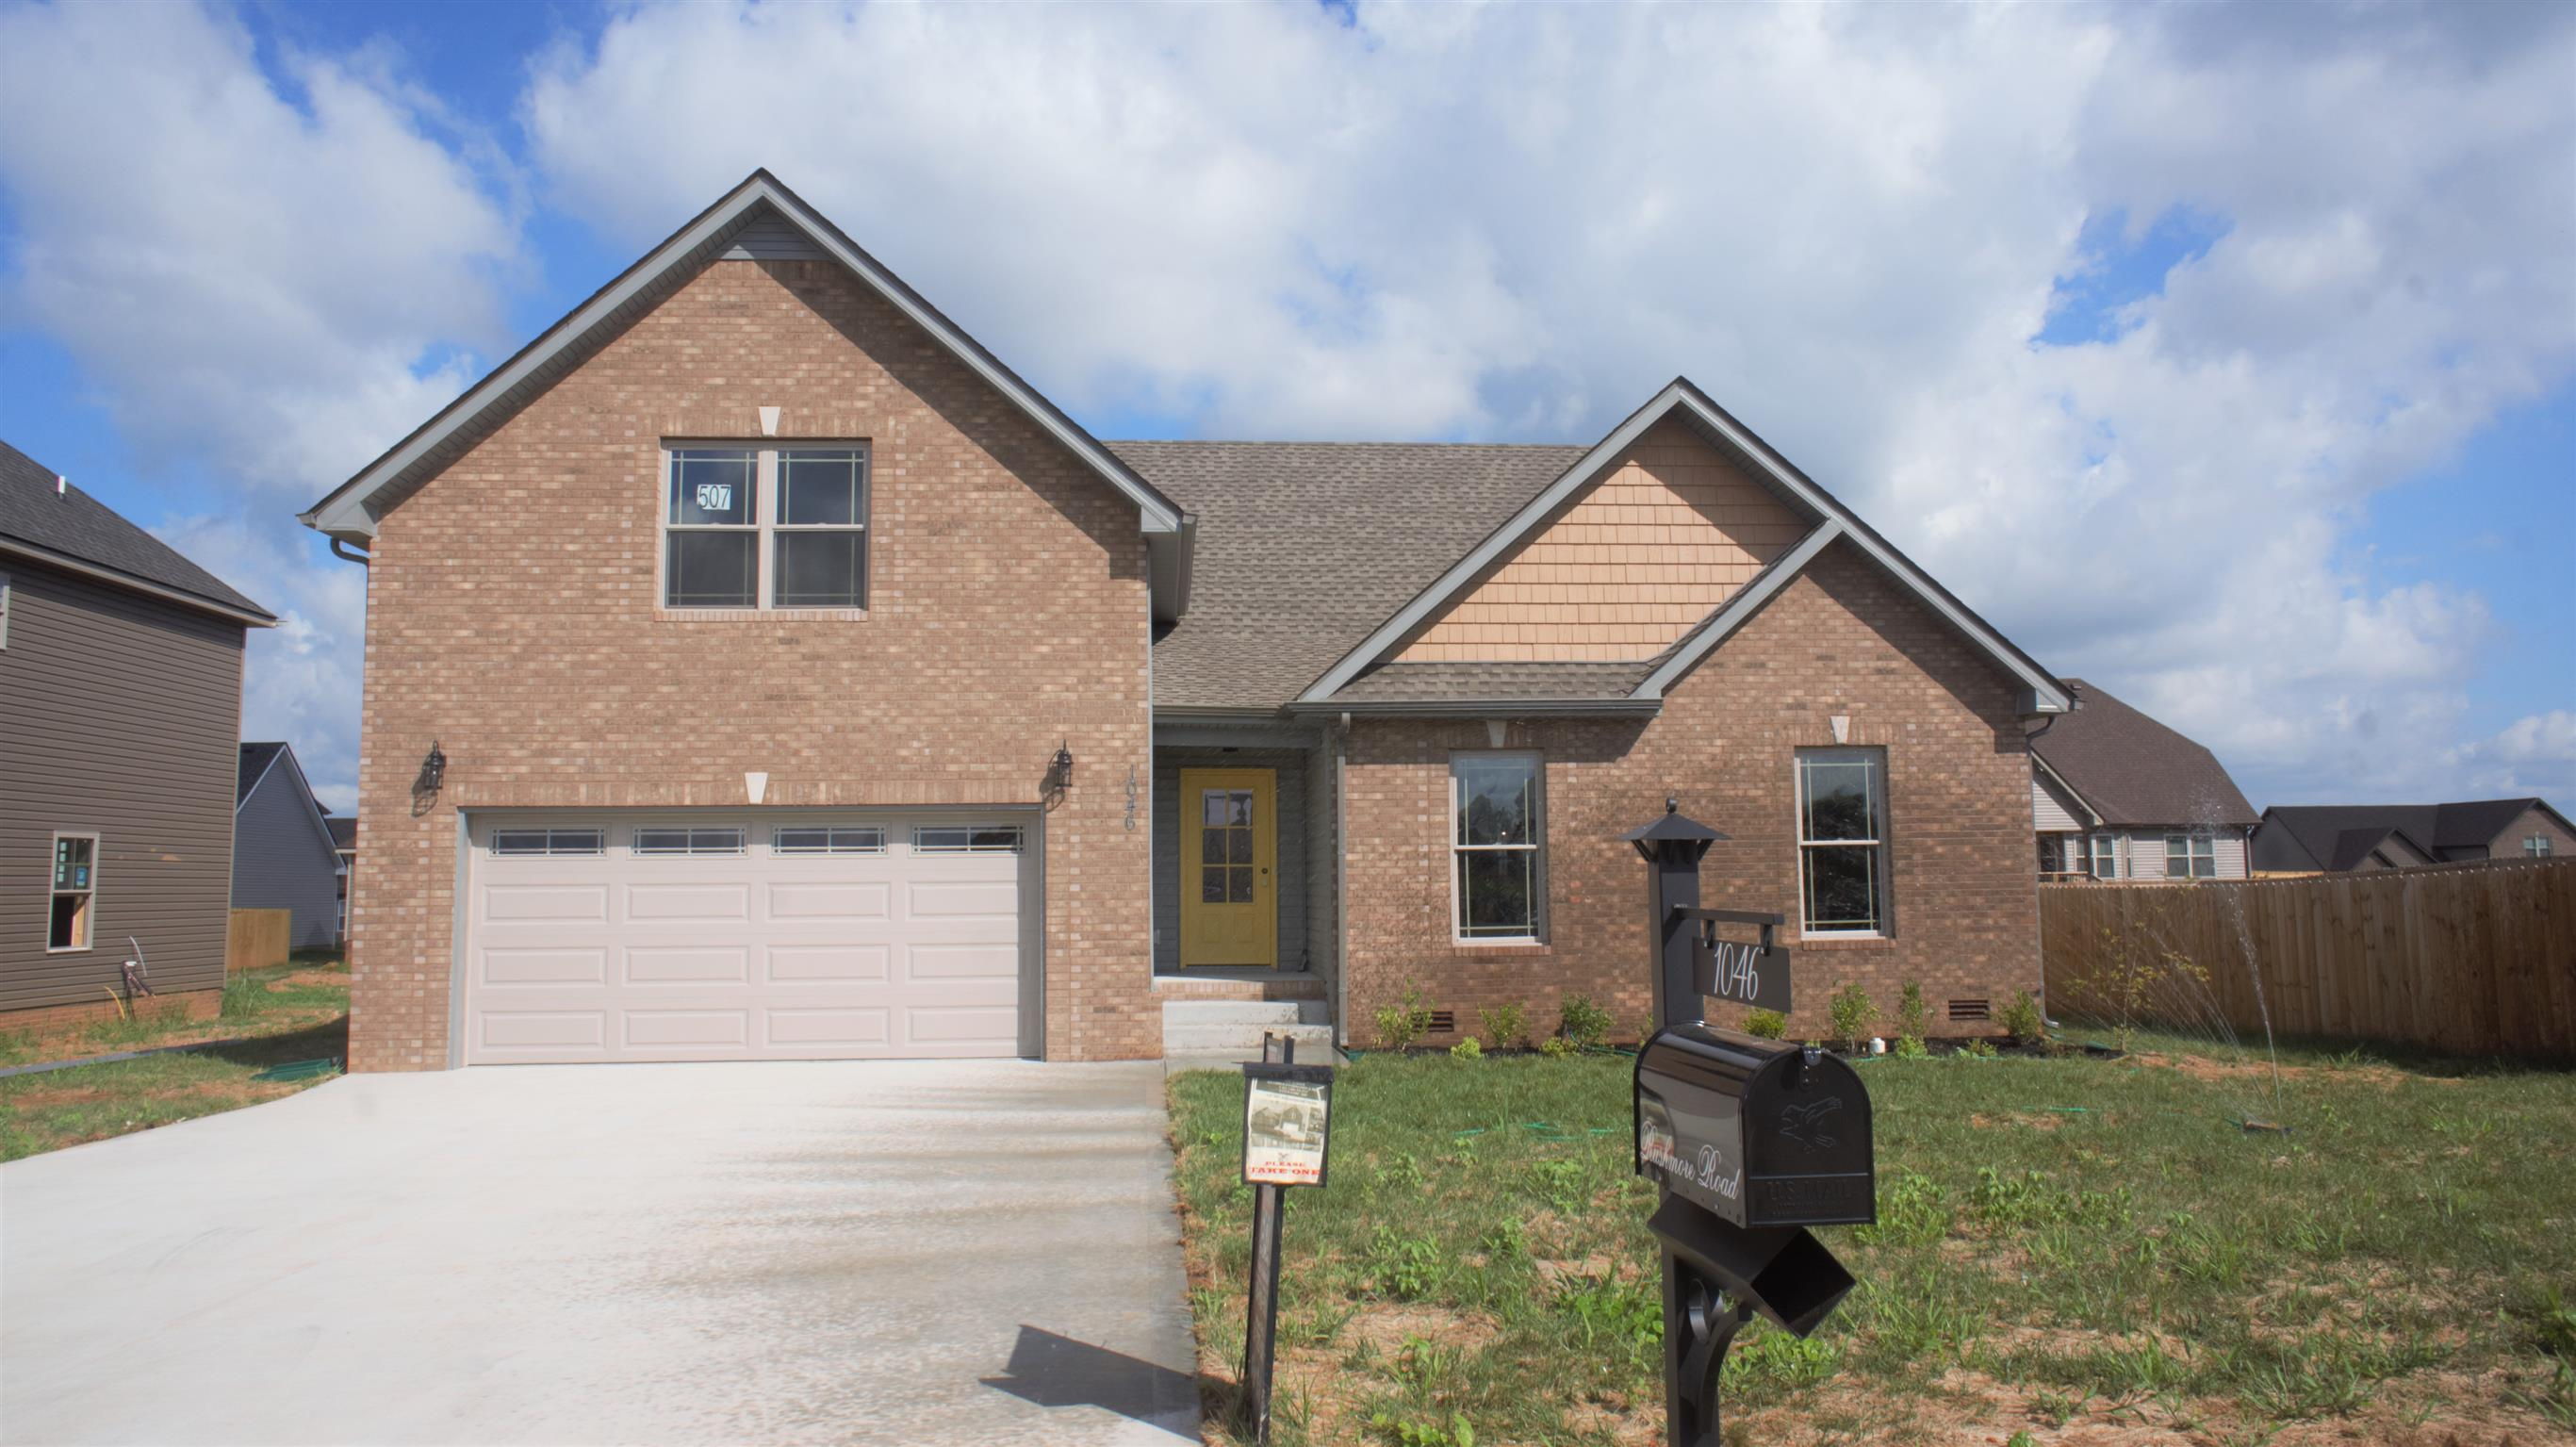 507 Autumnwood Farms , Clarksville, TN 37042 - Clarksville, TN real estate listing